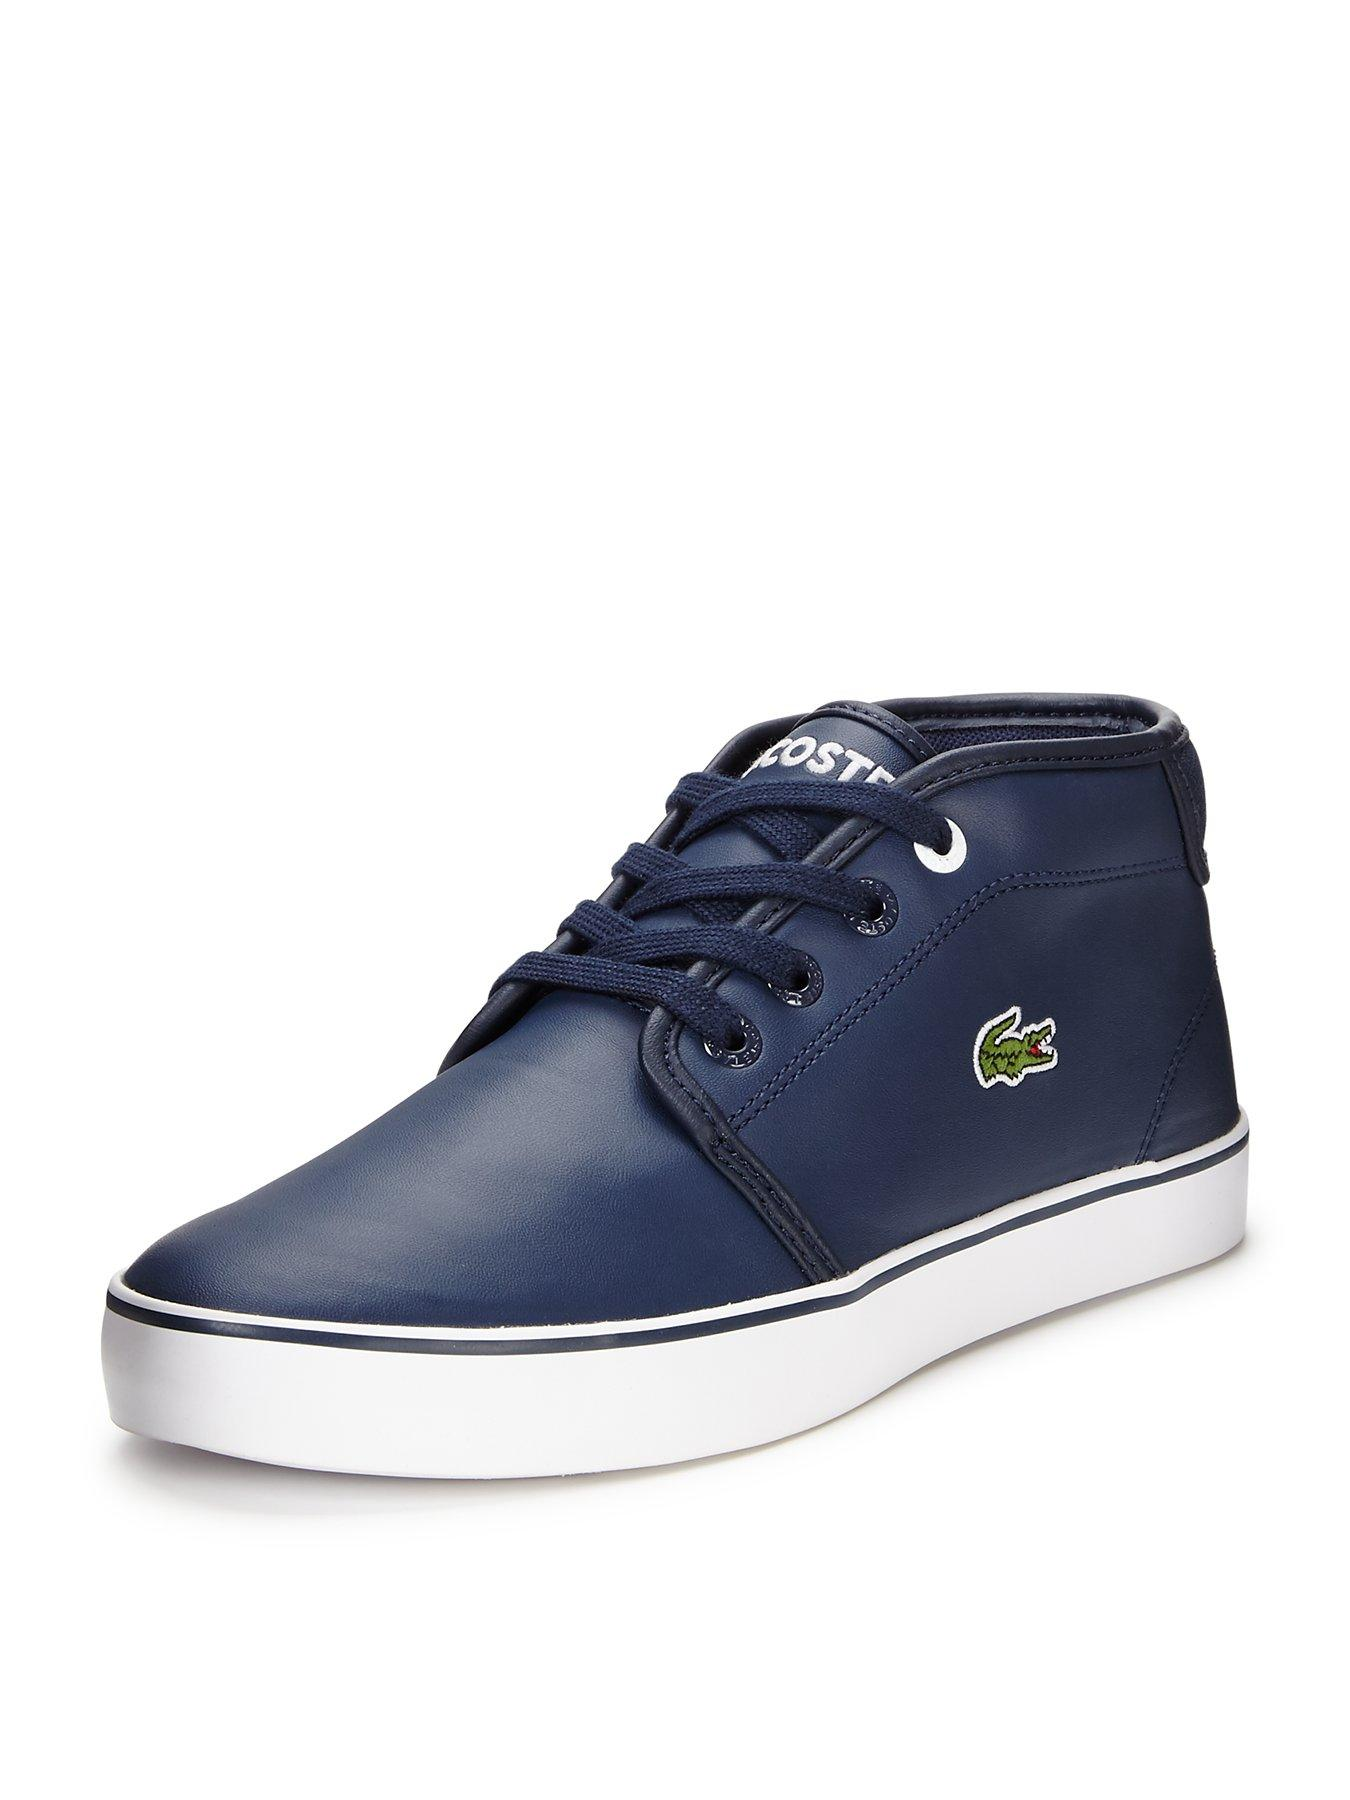 15d1014330a5 ... how much does lacoste shoes cost ...